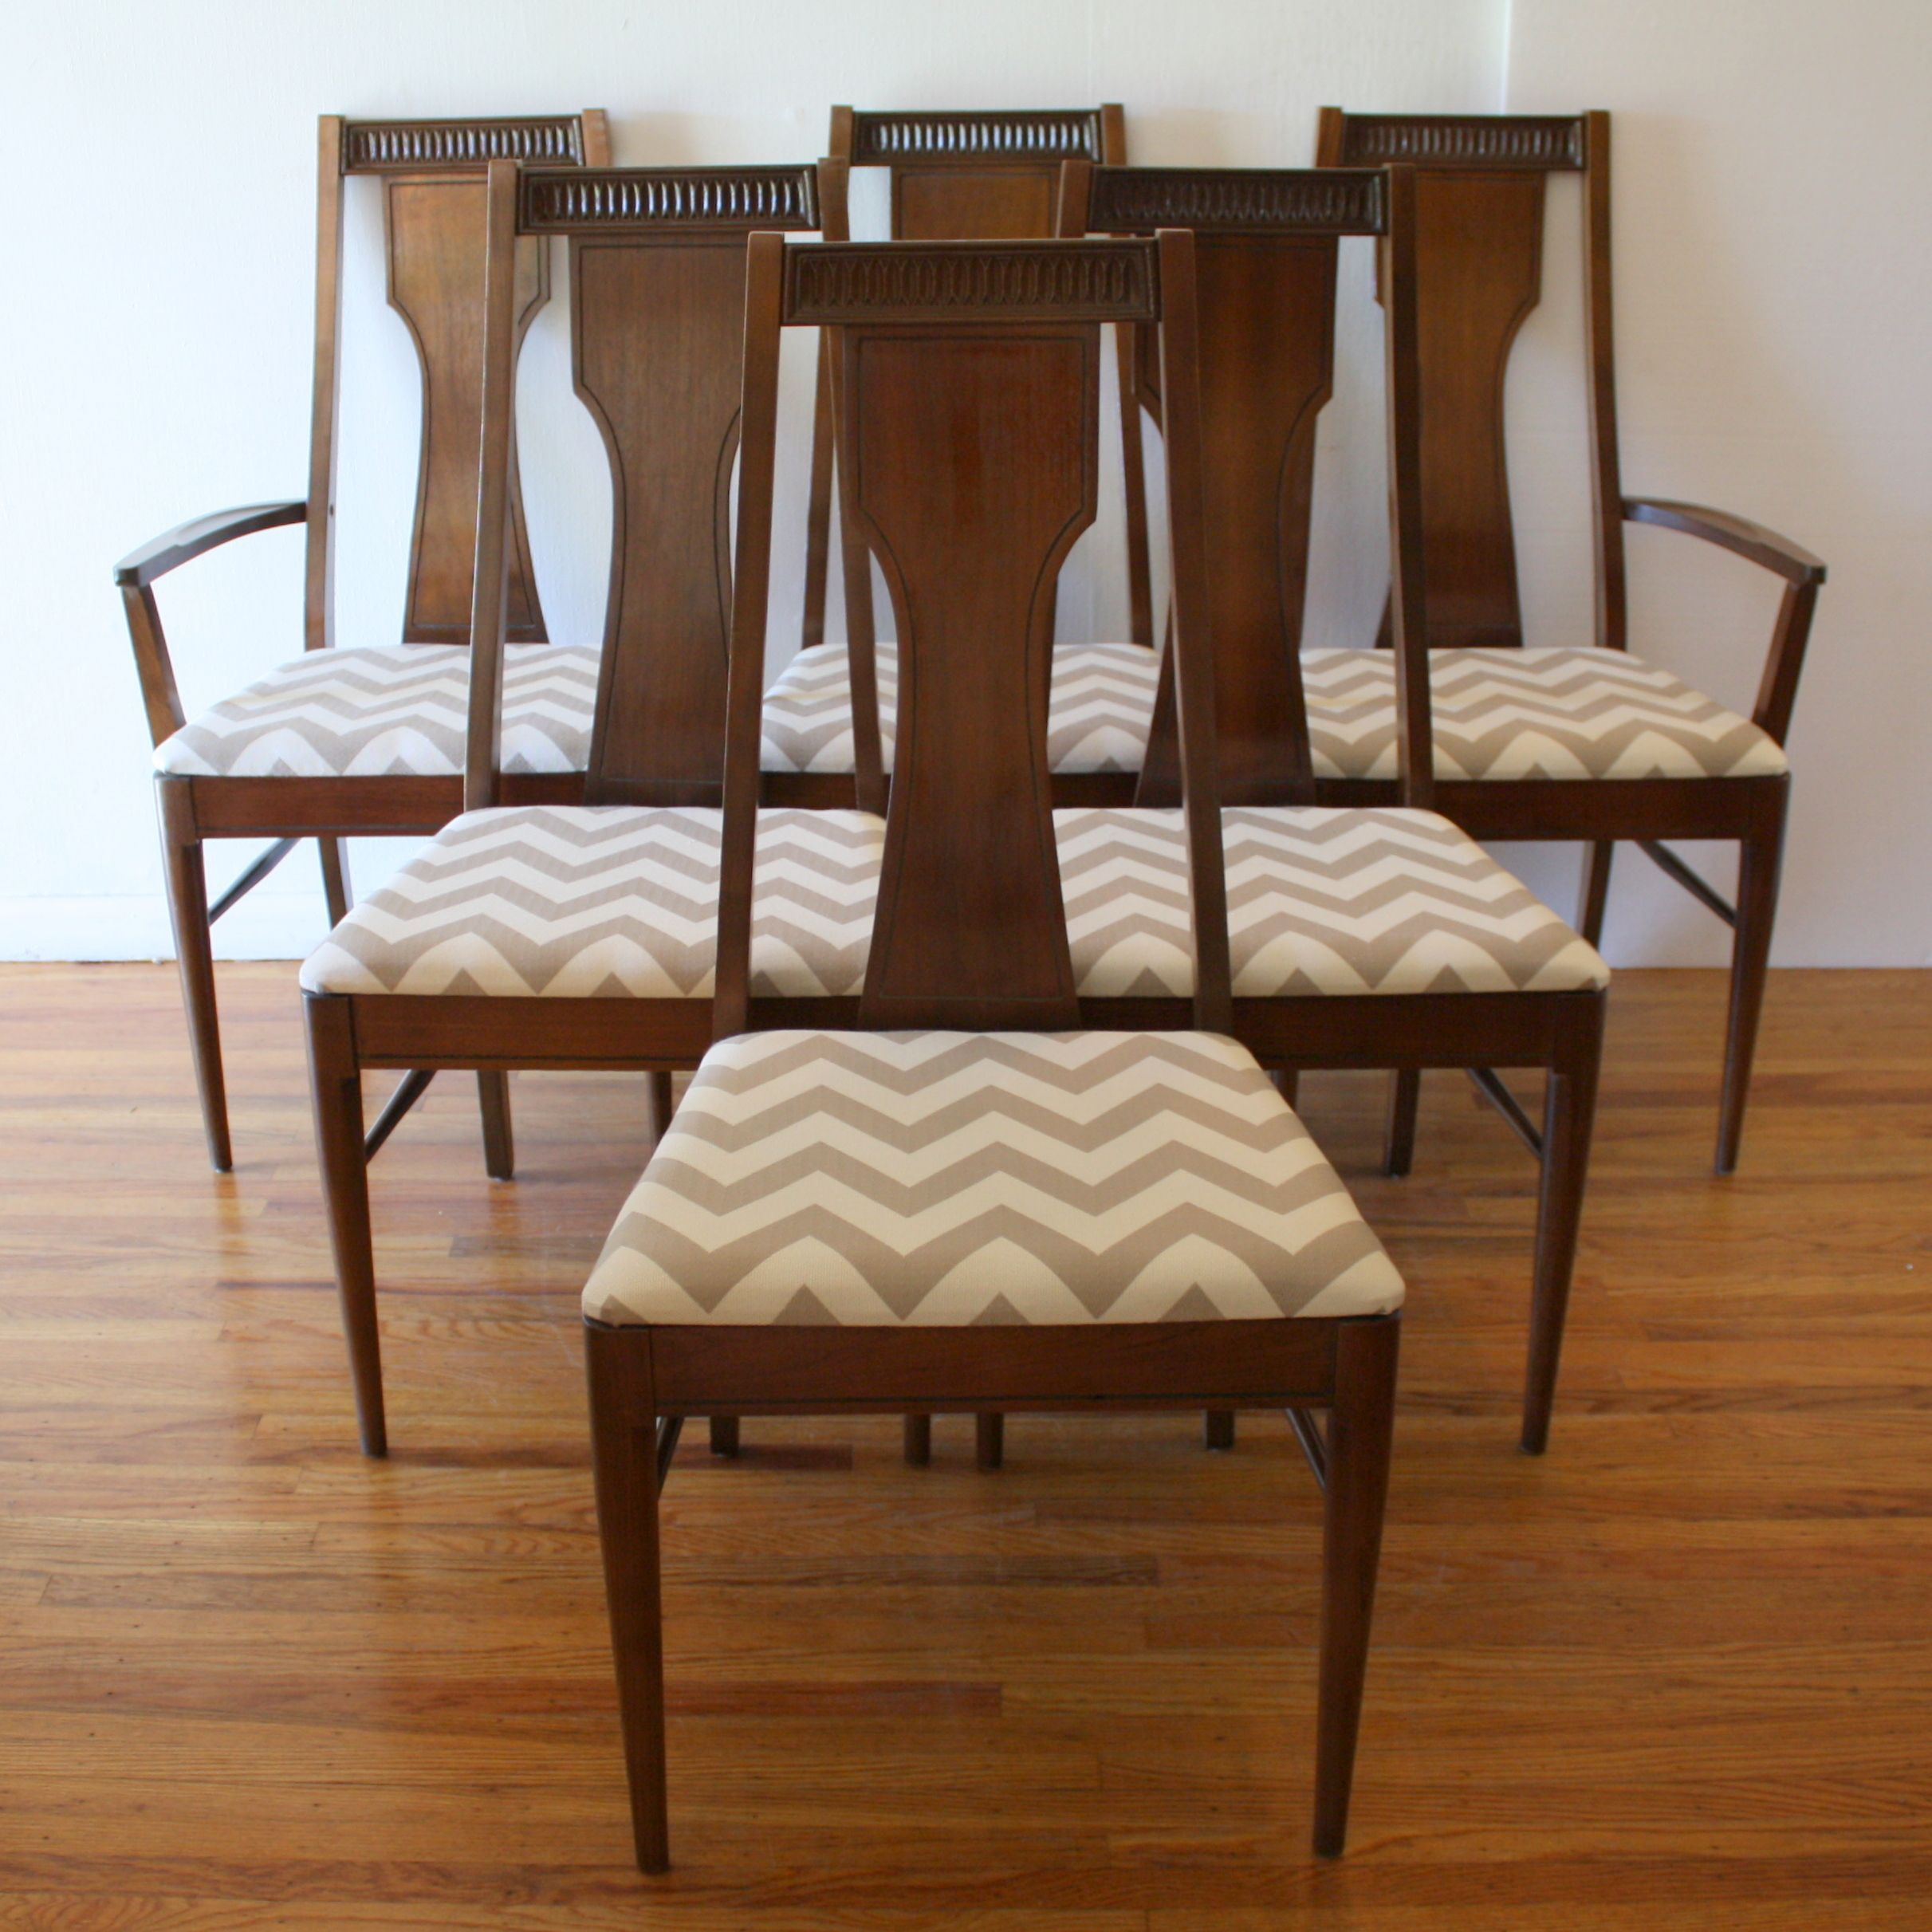 Mid Century Modern Dining Chair Set By Broyhill Upholstered With New Gray  And White Chevron